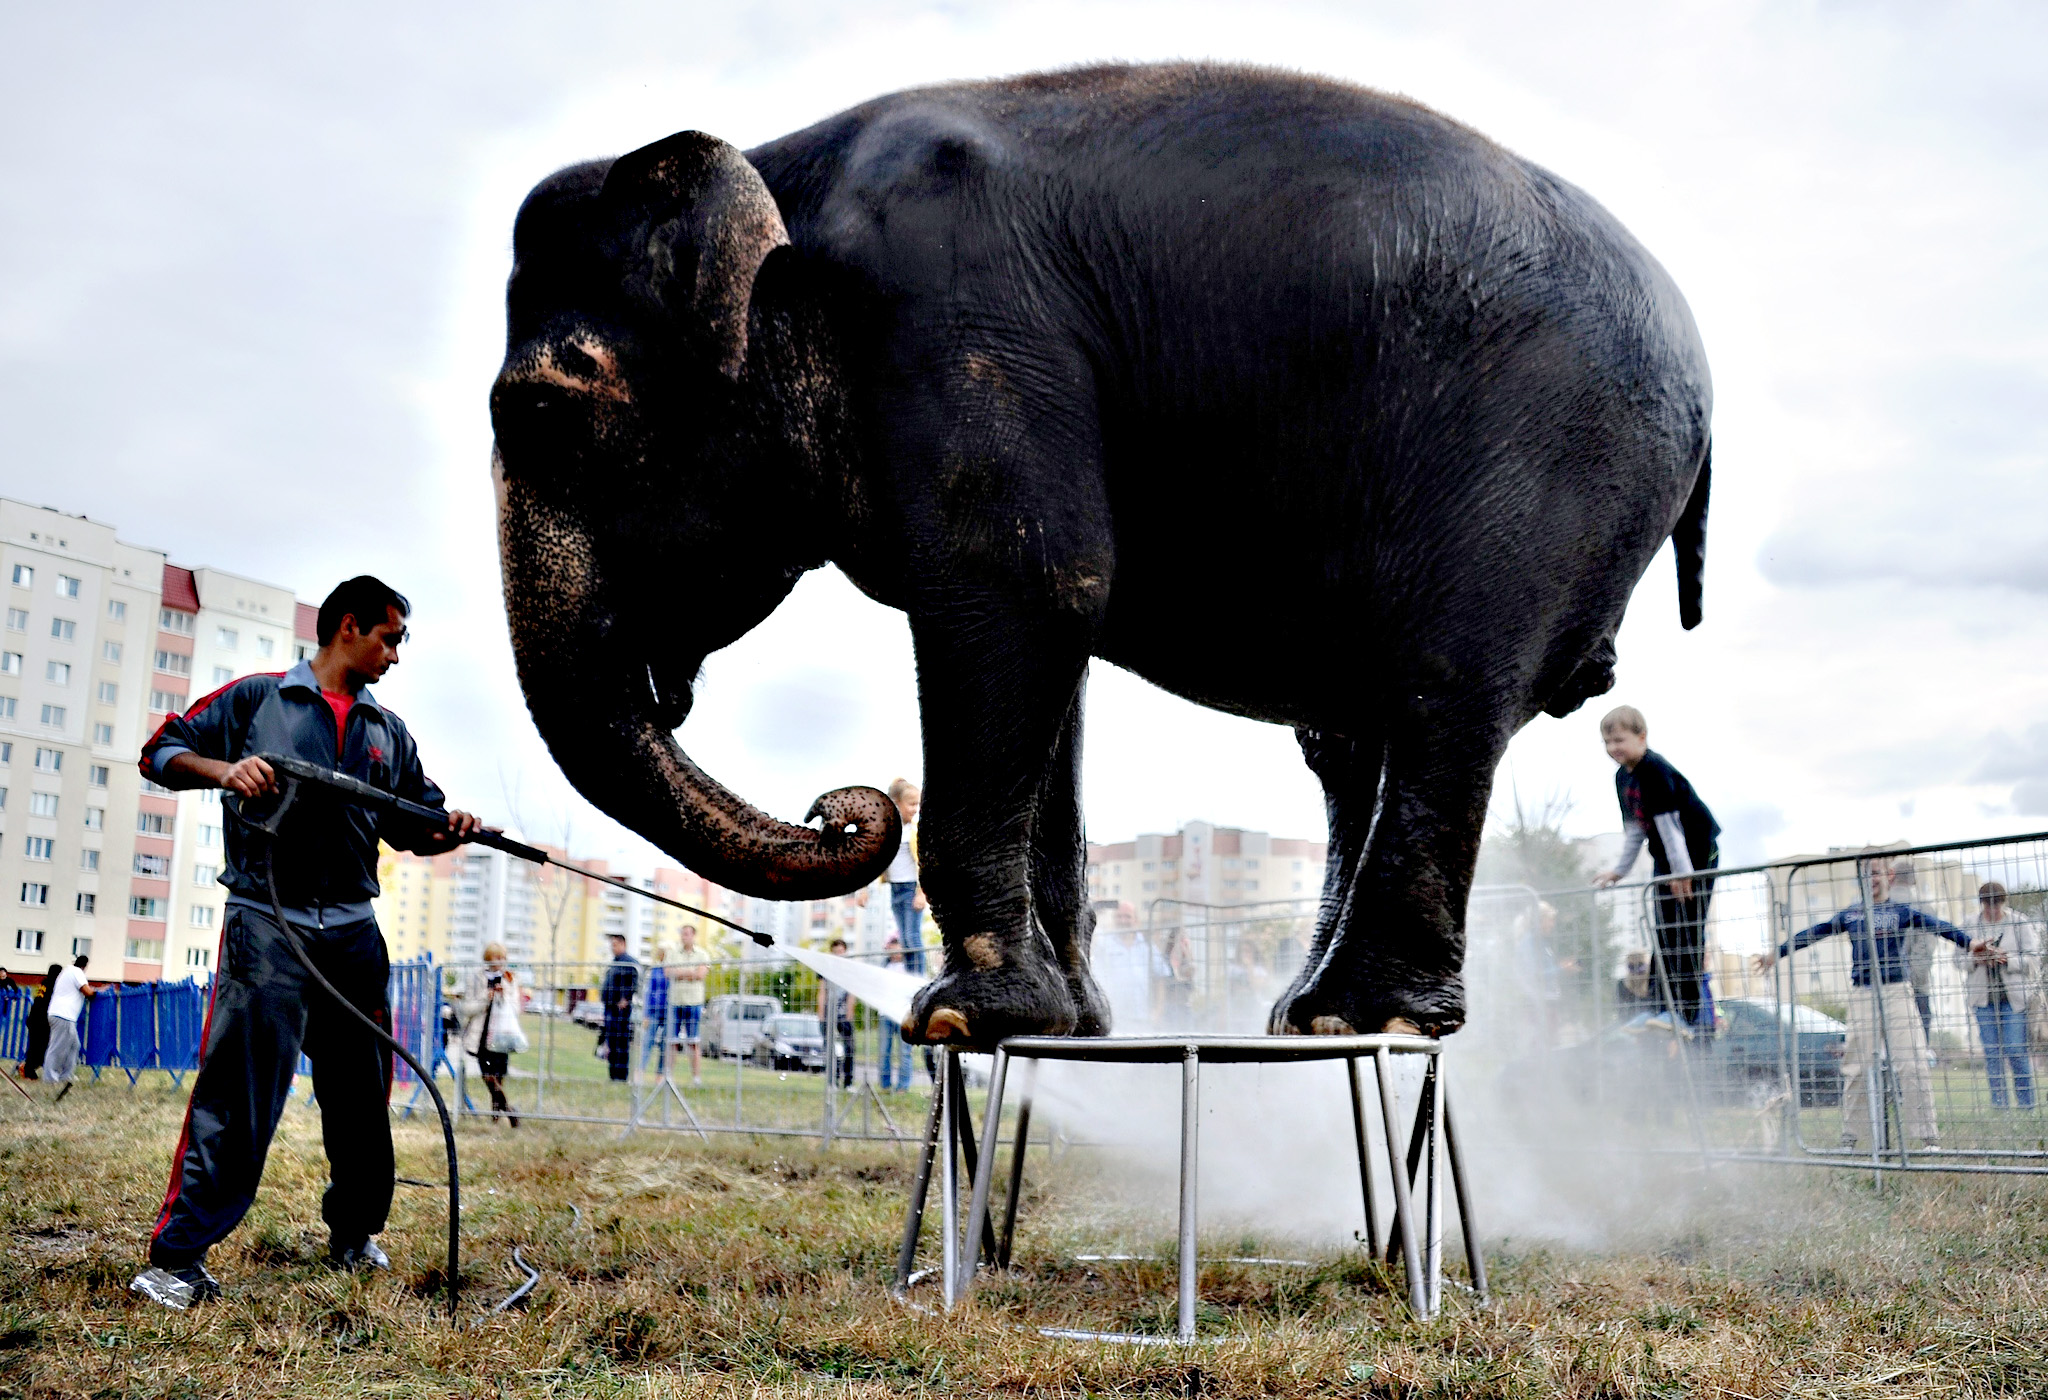 A caretaker washes down an elephant at the mobile Diva circus in the town of Molodechno, some 70 kilometers northwest of Minsk on September 3, 2015